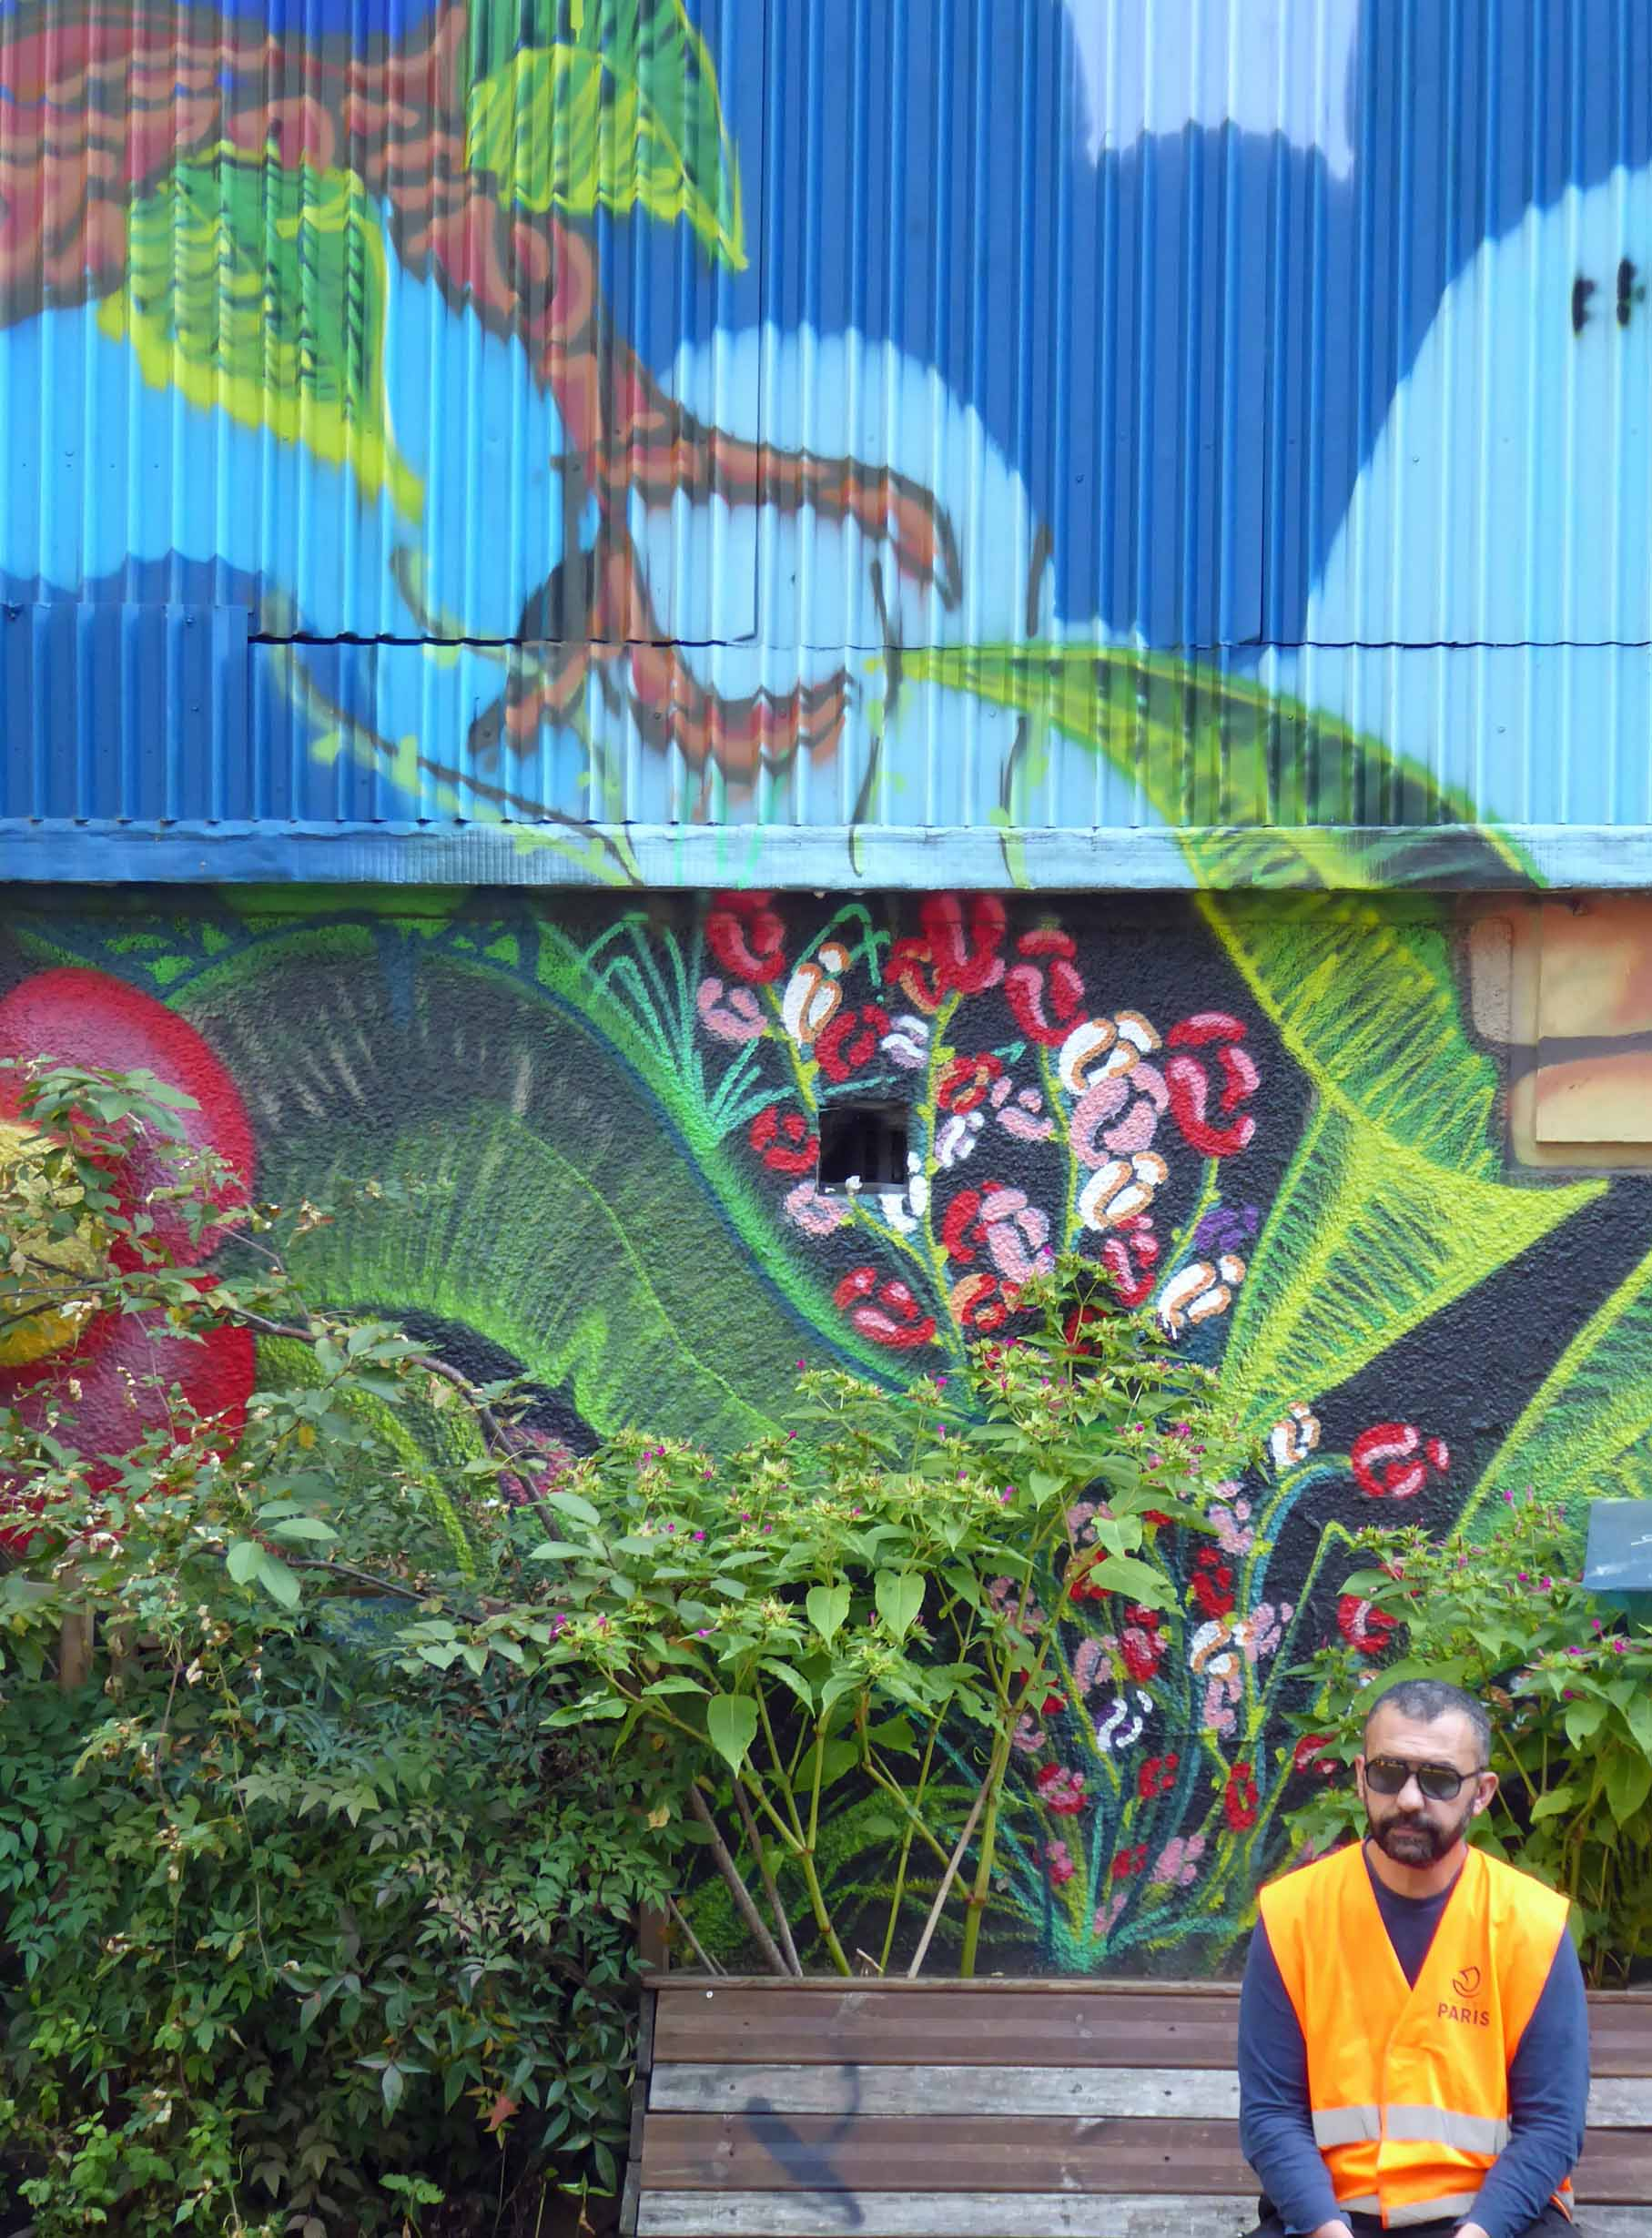 Mural of jungle with man on bench in front